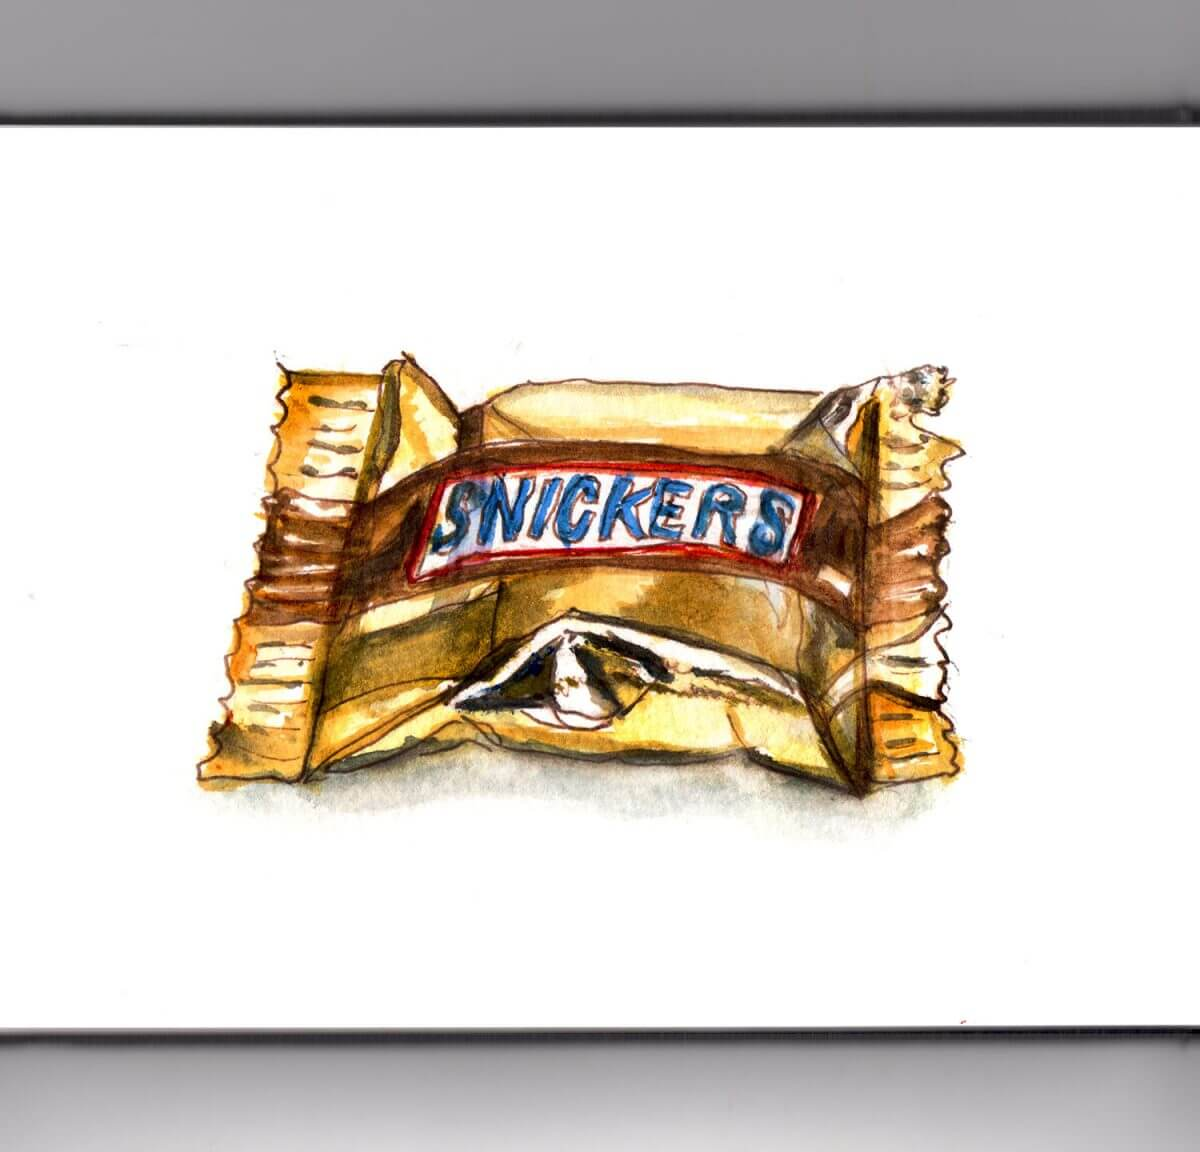 #WorldWatercolorGroup - Day 28 - Snickers Halloween Candy - Doodlewash